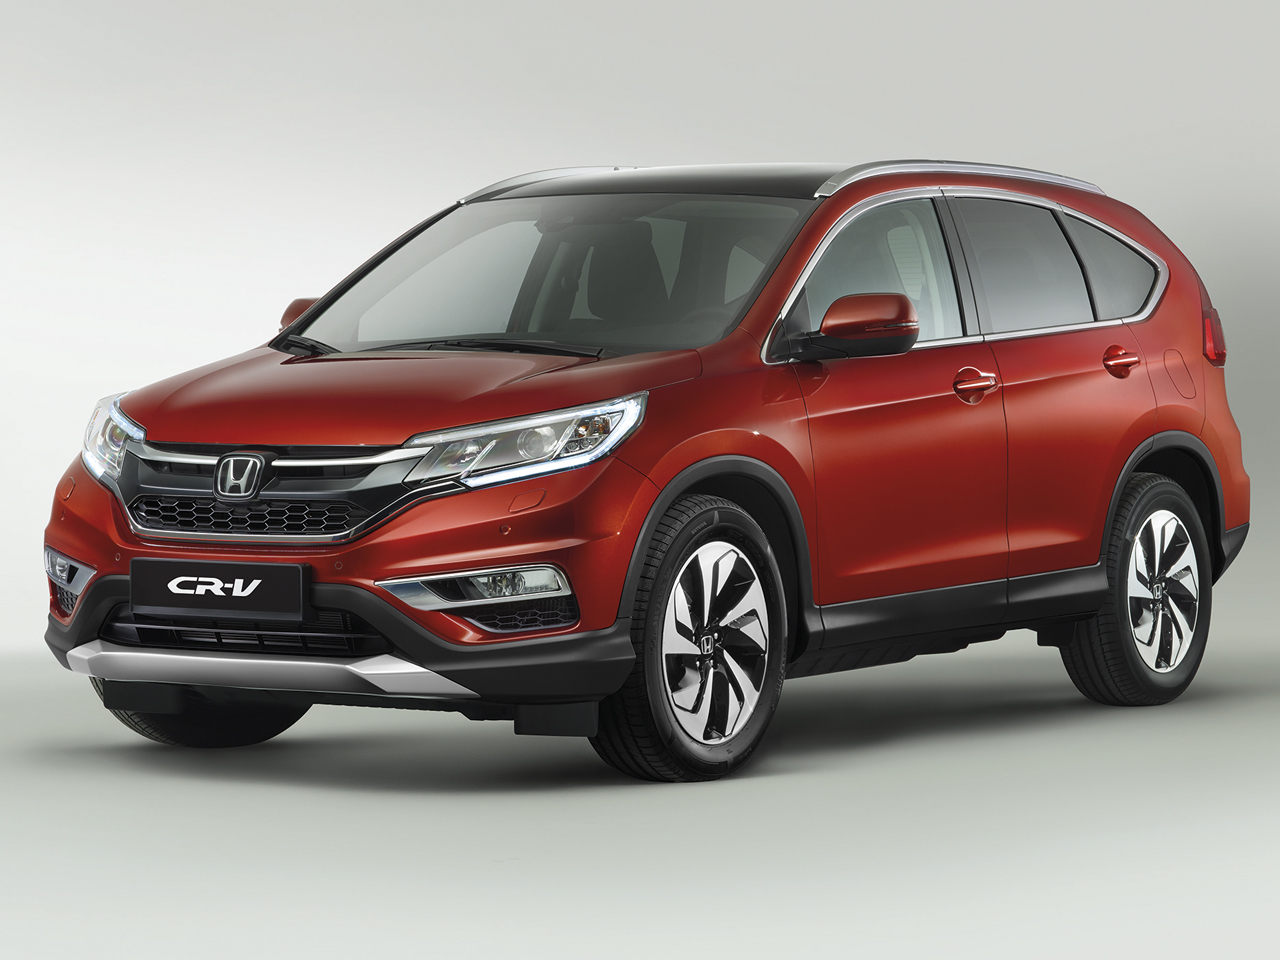 Honda cr v 2015 premi res photos officielles l 39 argus for Truecar com honda crv